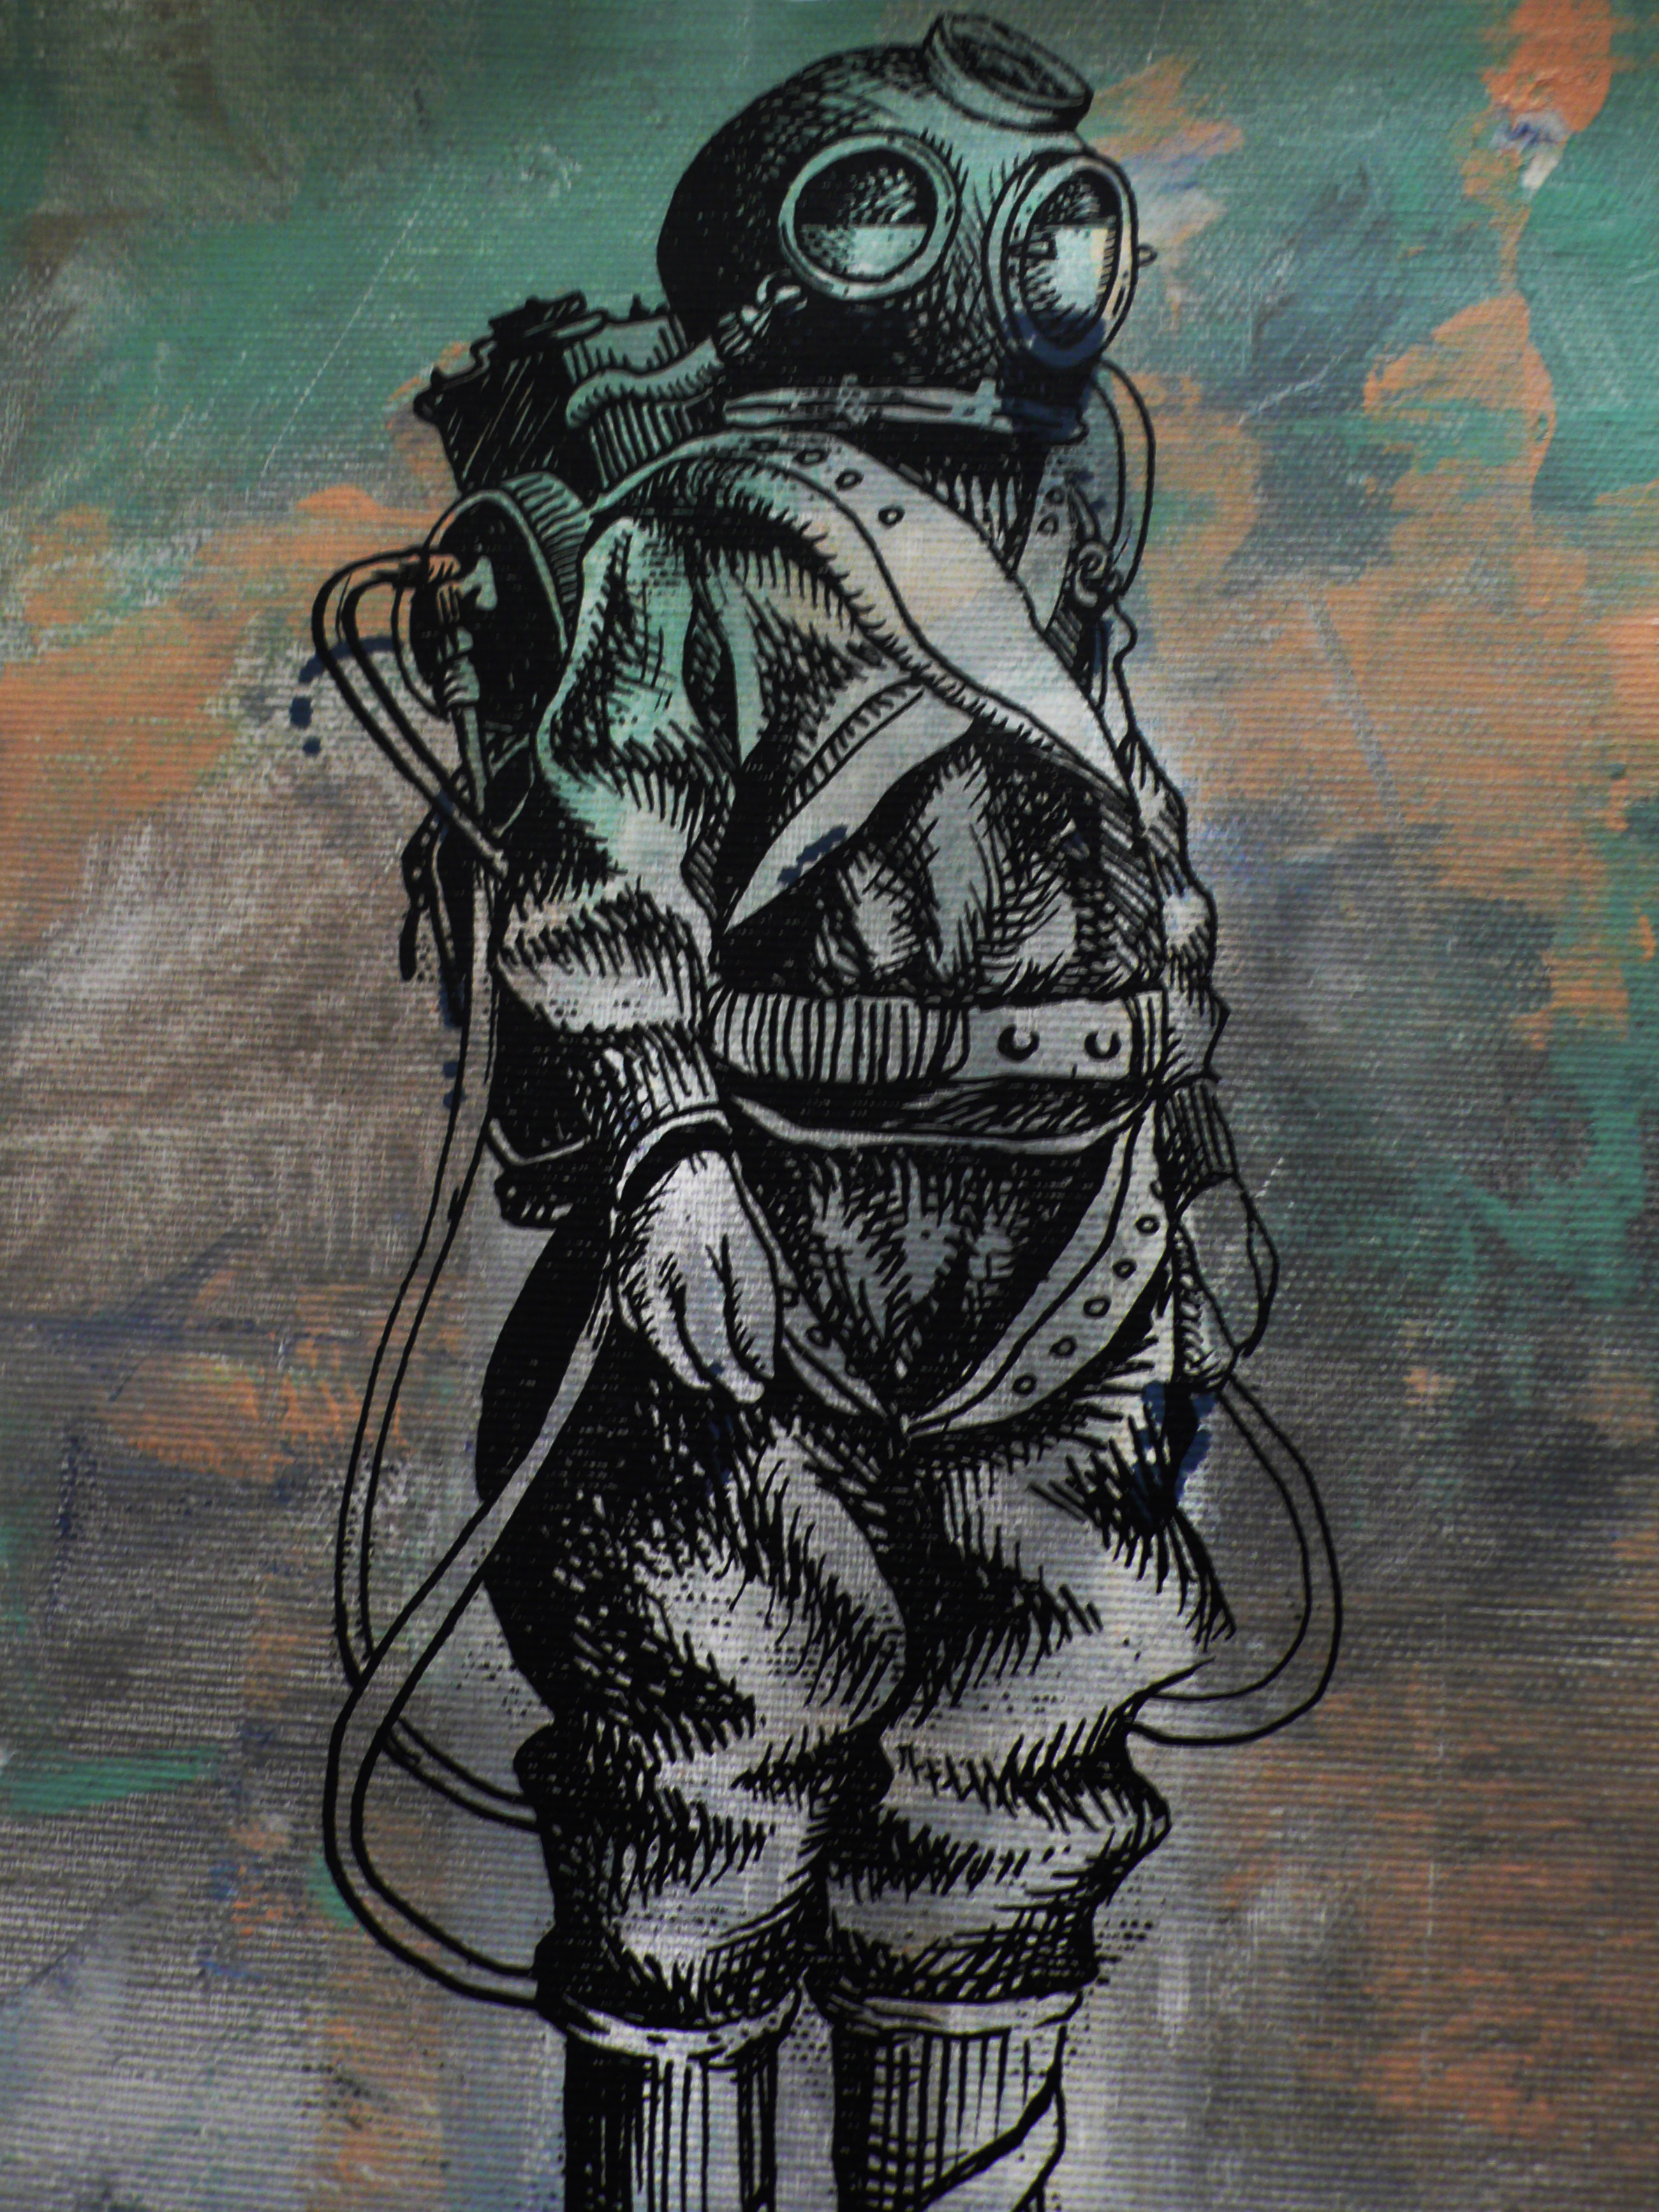 silk-screen-print on painted canvas, 2015